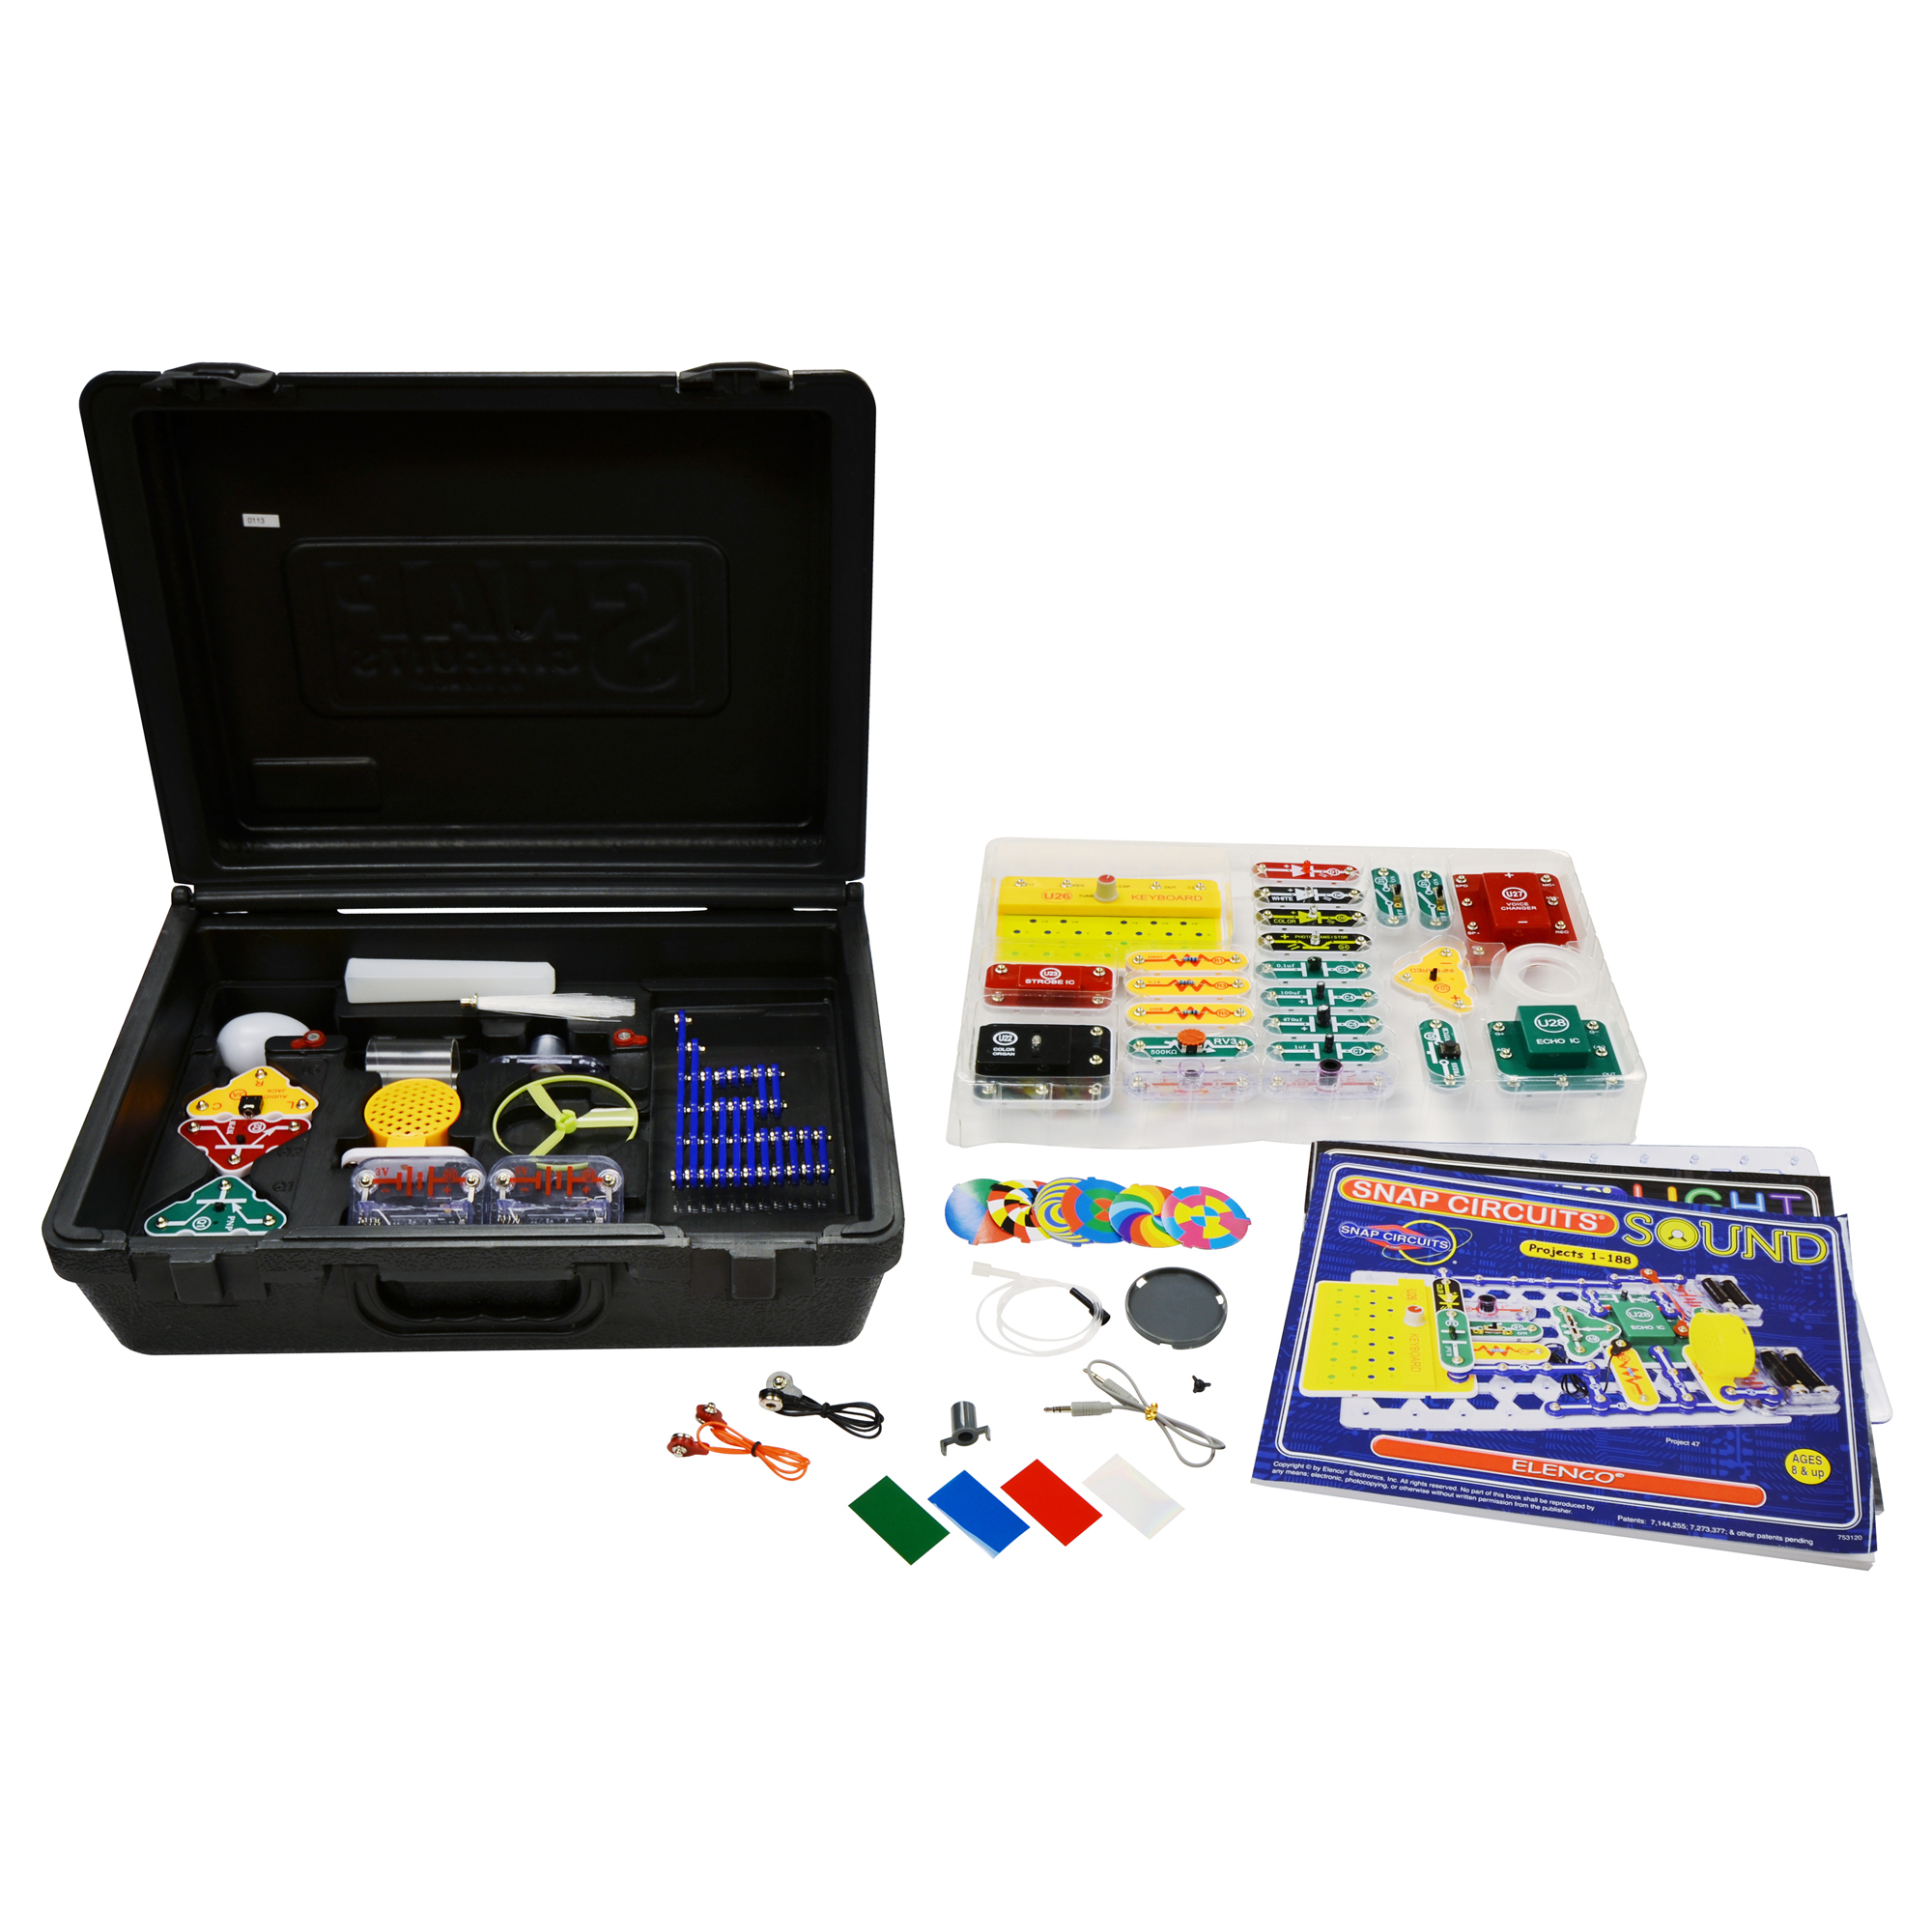 Snap Circuits Light And Sound Case Ask Answer Wiring Diagram Elenco Scl 175 Kids Learn Electronic Projects Deluxe Combo Rh Com Circuit Experiments Arcade U14